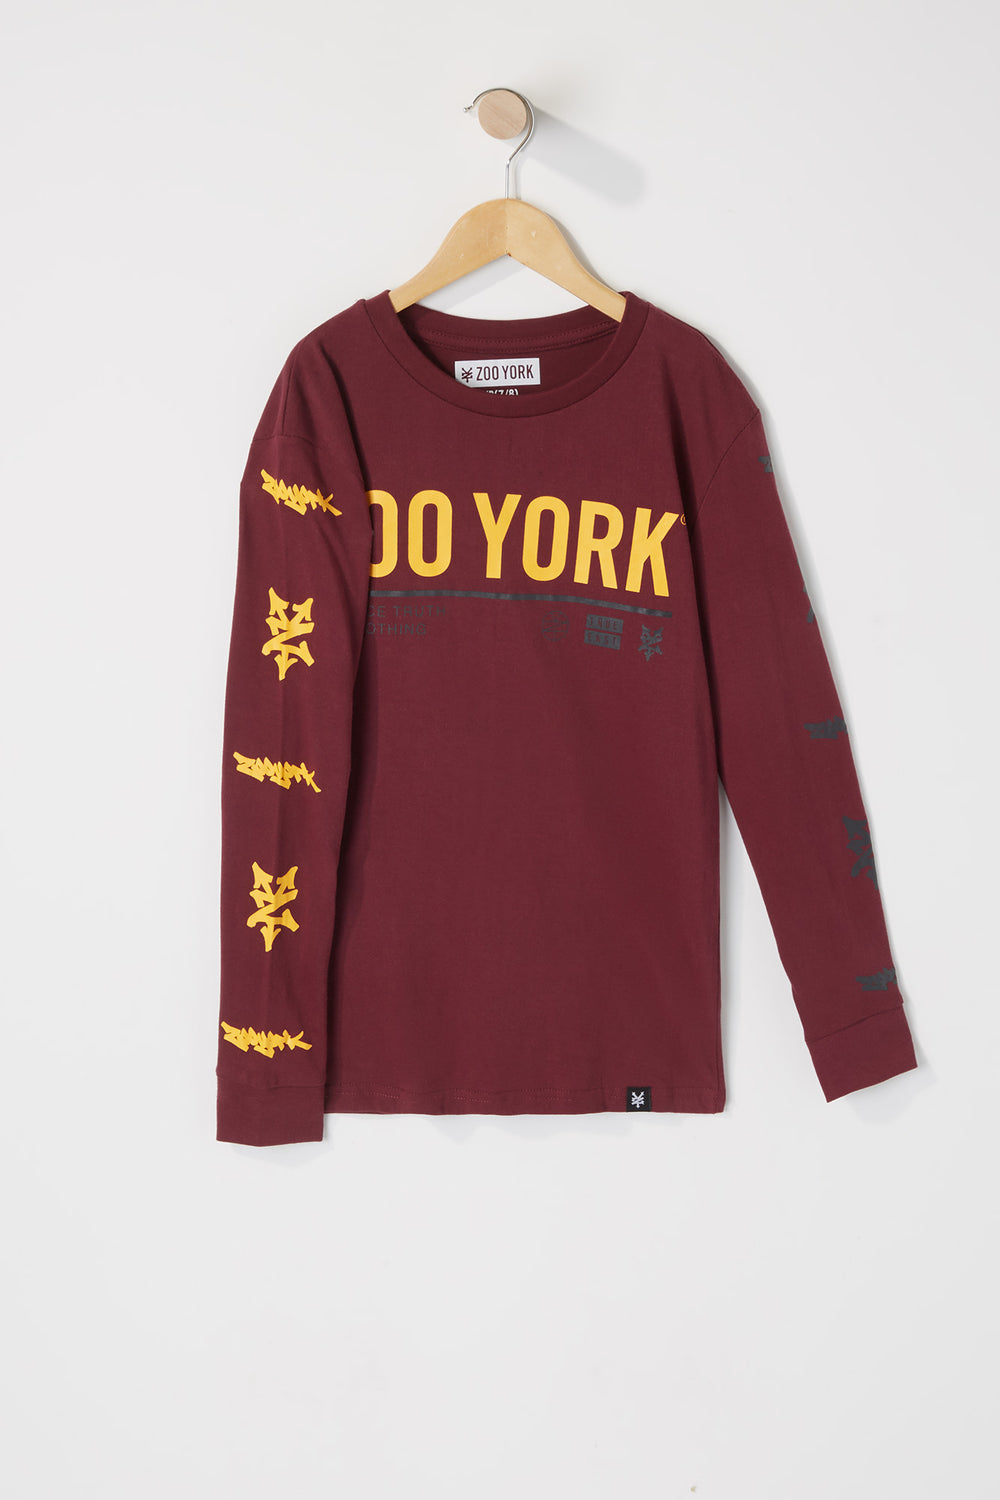 Zoo York Boys Fear Nothing Long Sleeves Shirt Burgundy